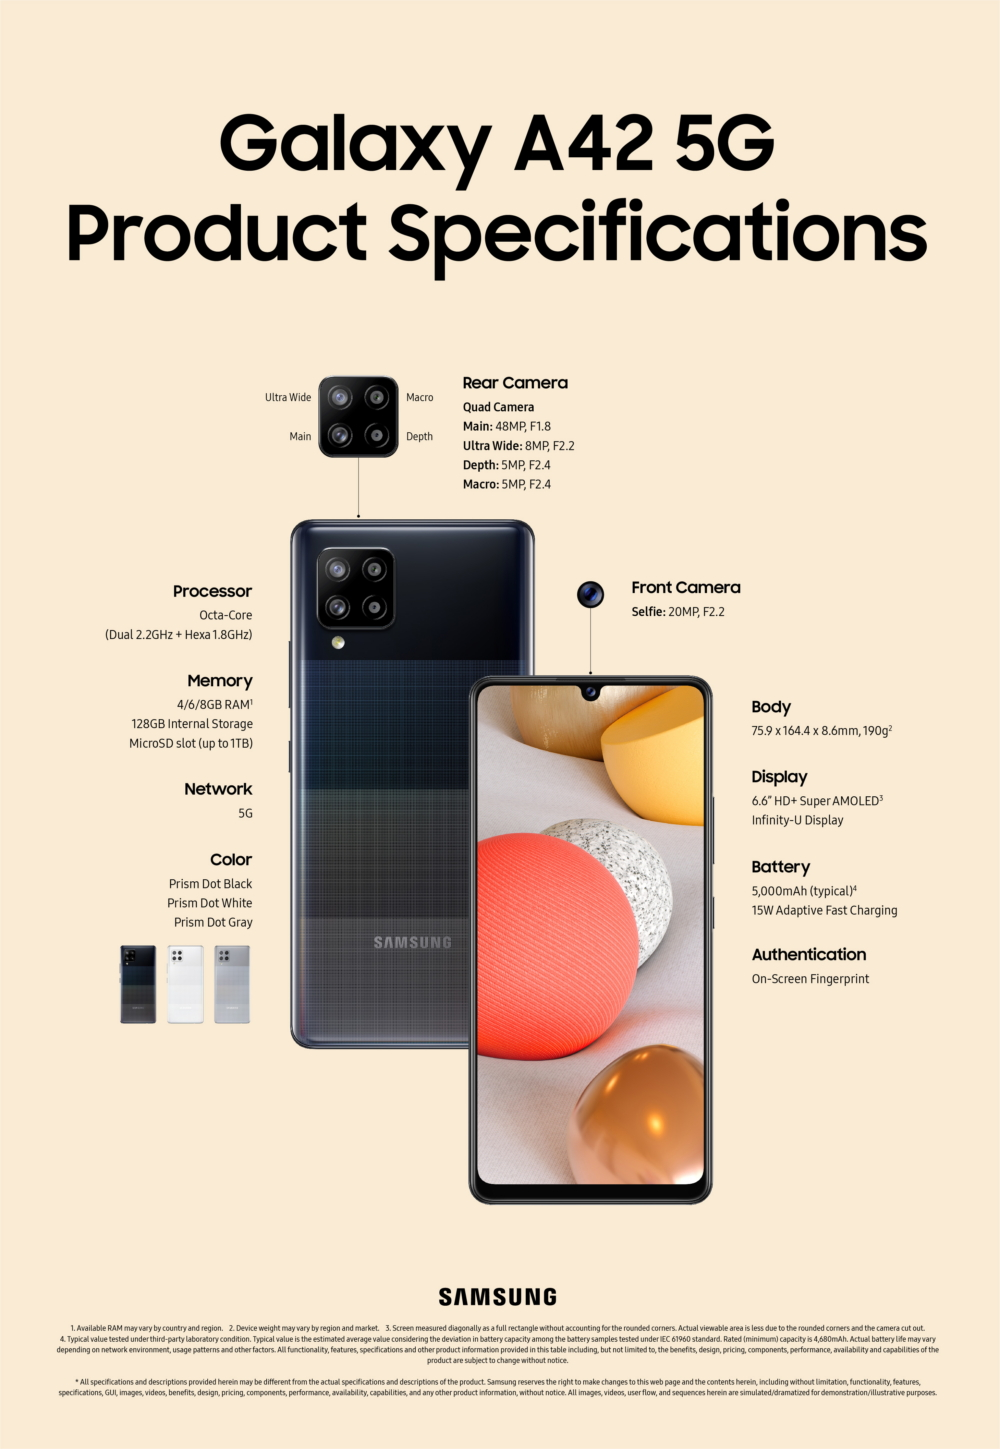 Samsung Galaxy A42 5G Unveiled - Affordable 5G Smartphone for the Masses? 17